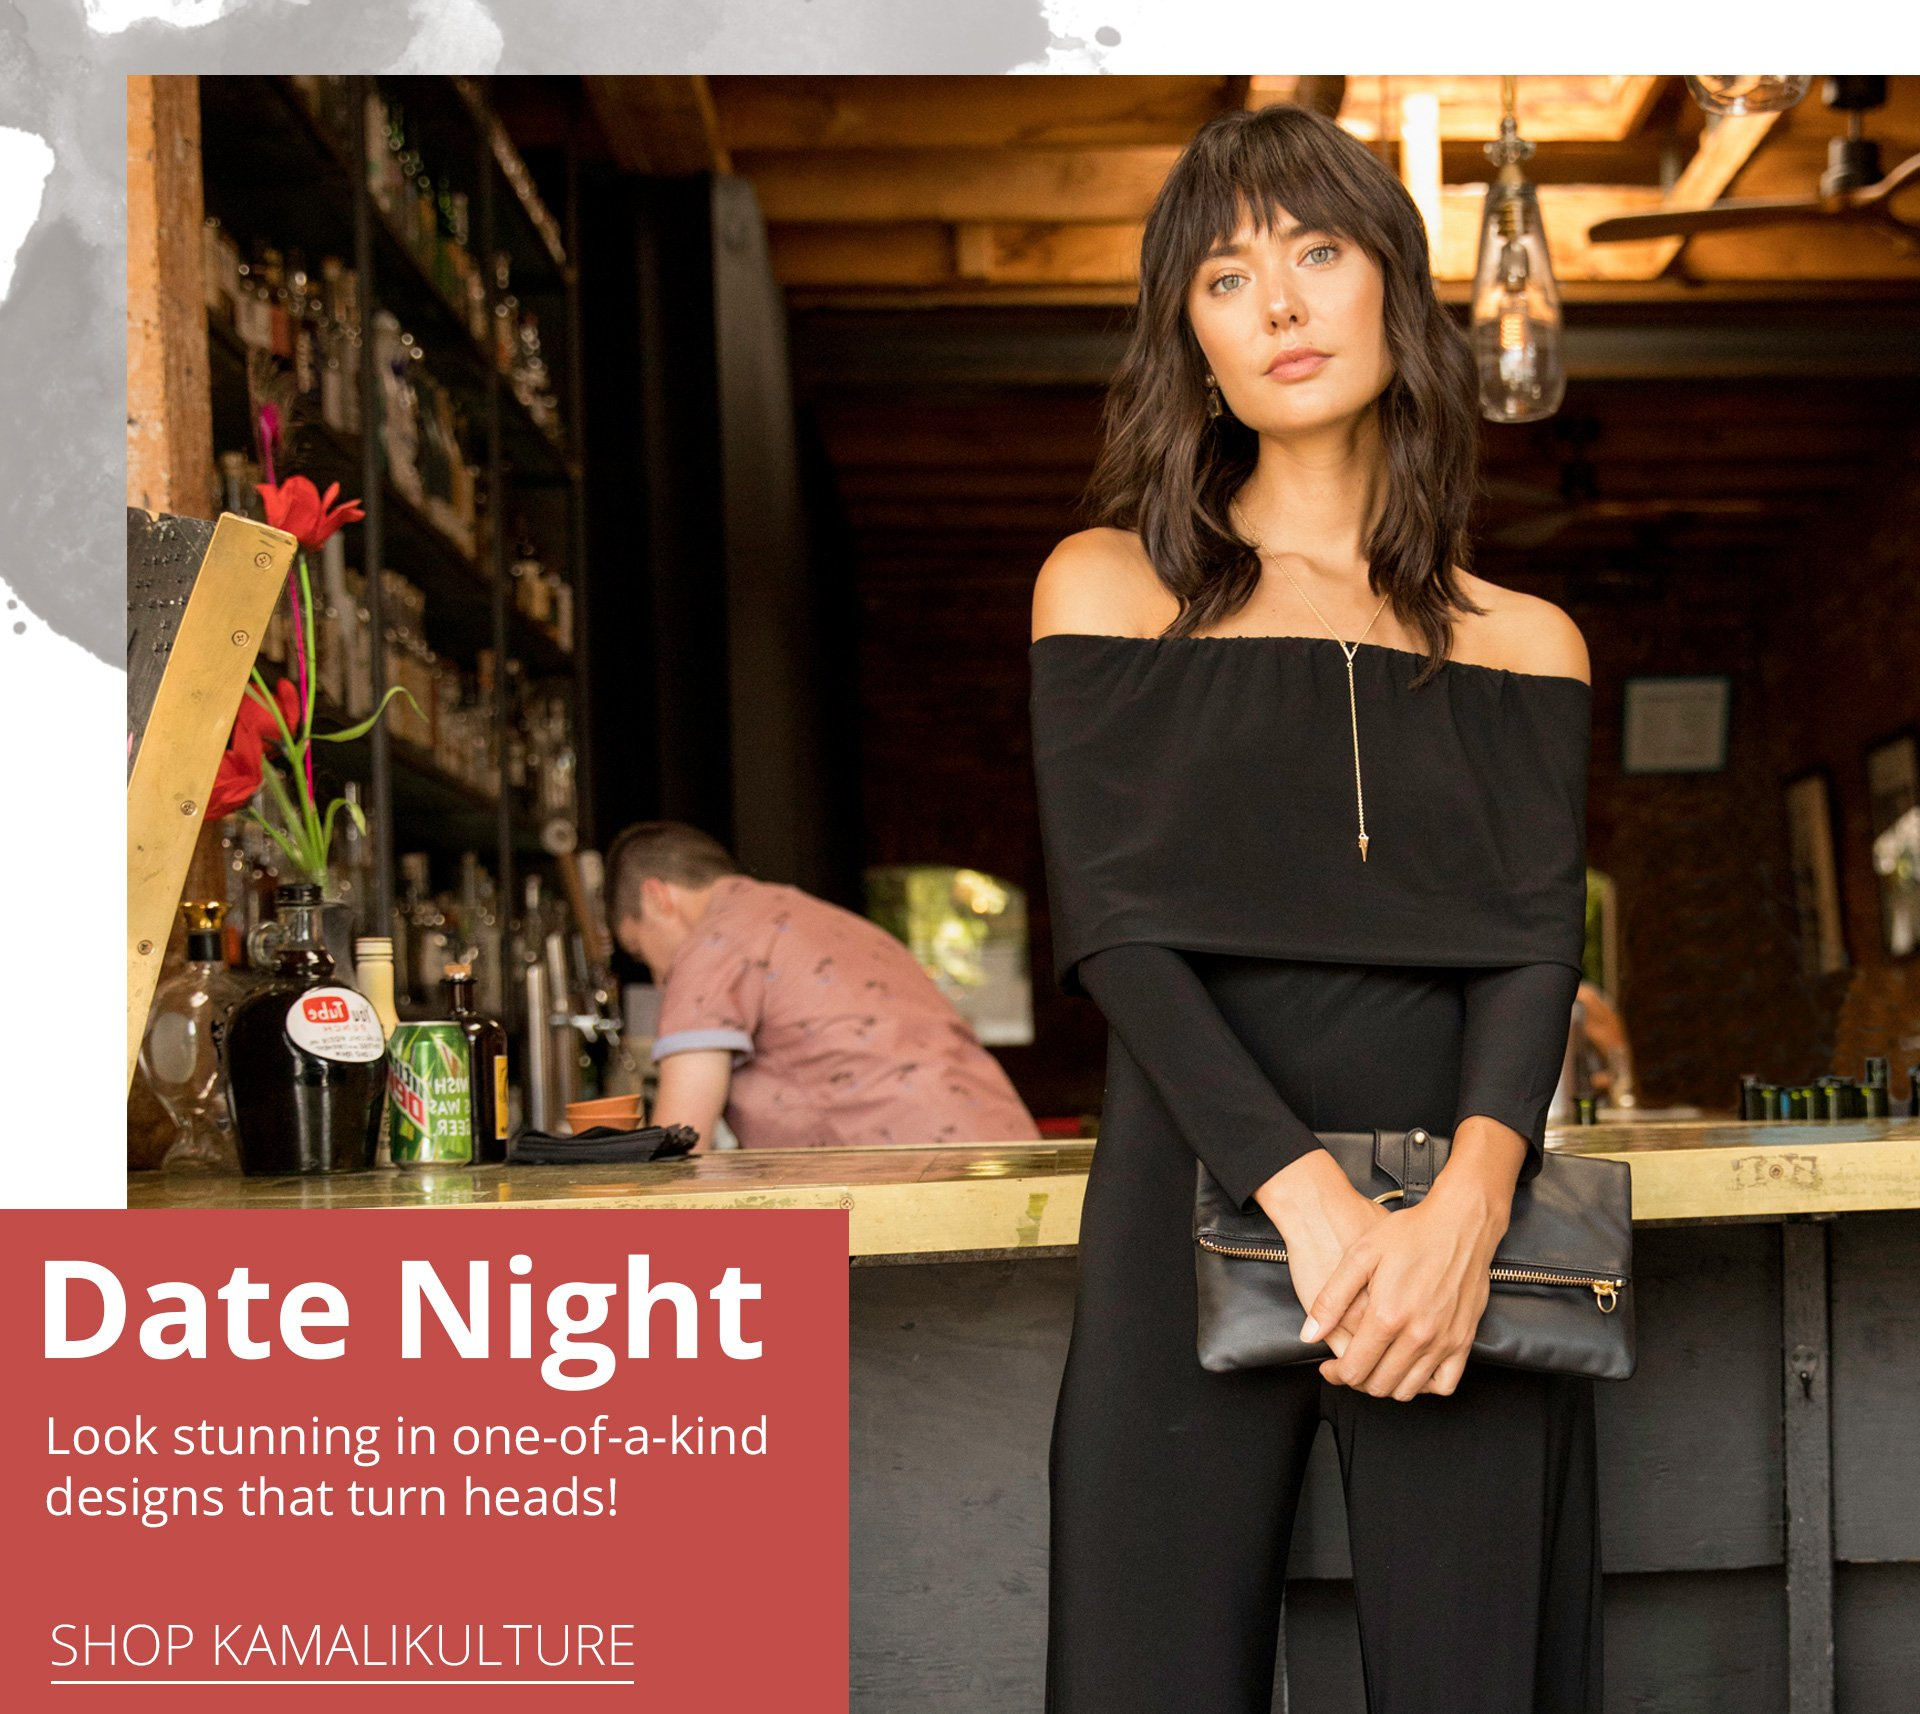 Date Night. Look stunning in one-of-a-kind designs that turn heads.